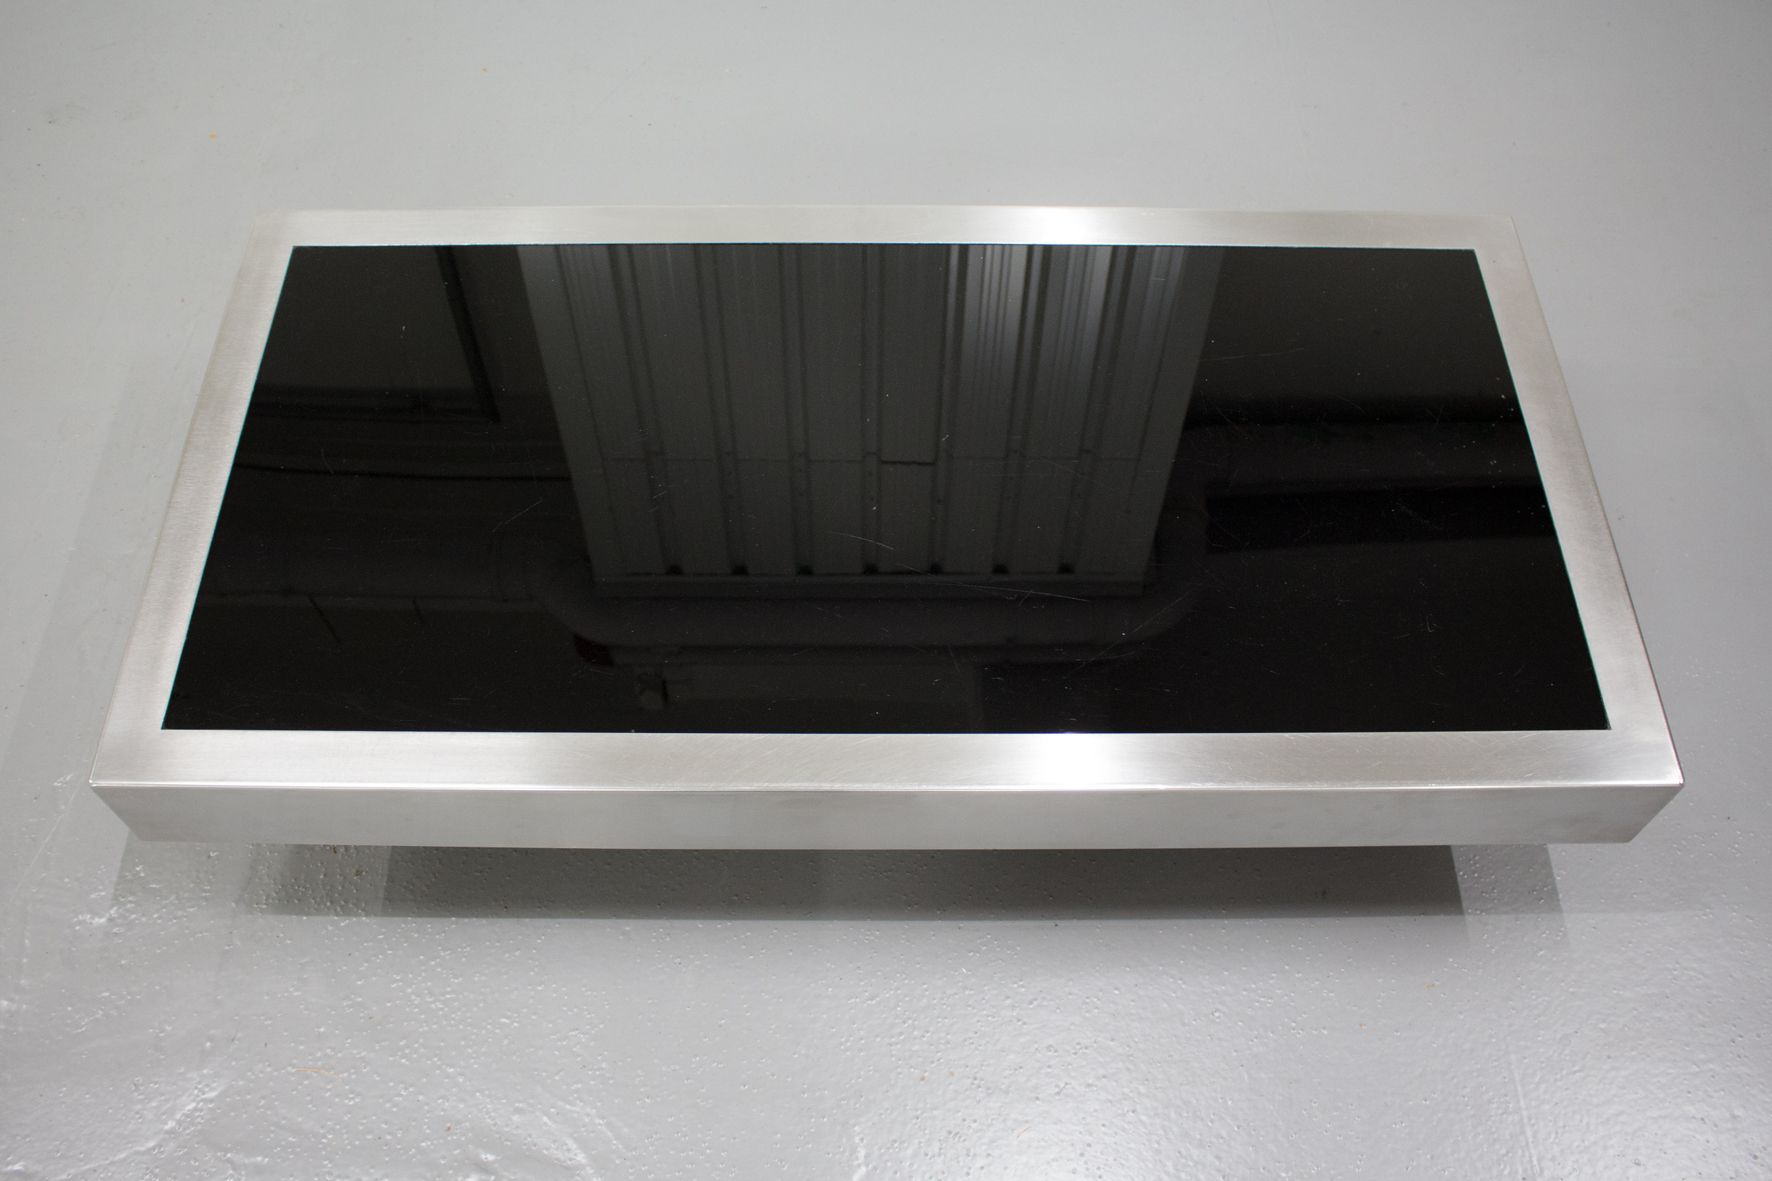 Black glass chrome coffee table by willy rizzo 1970s for sale at pamono Black and chrome coffee table